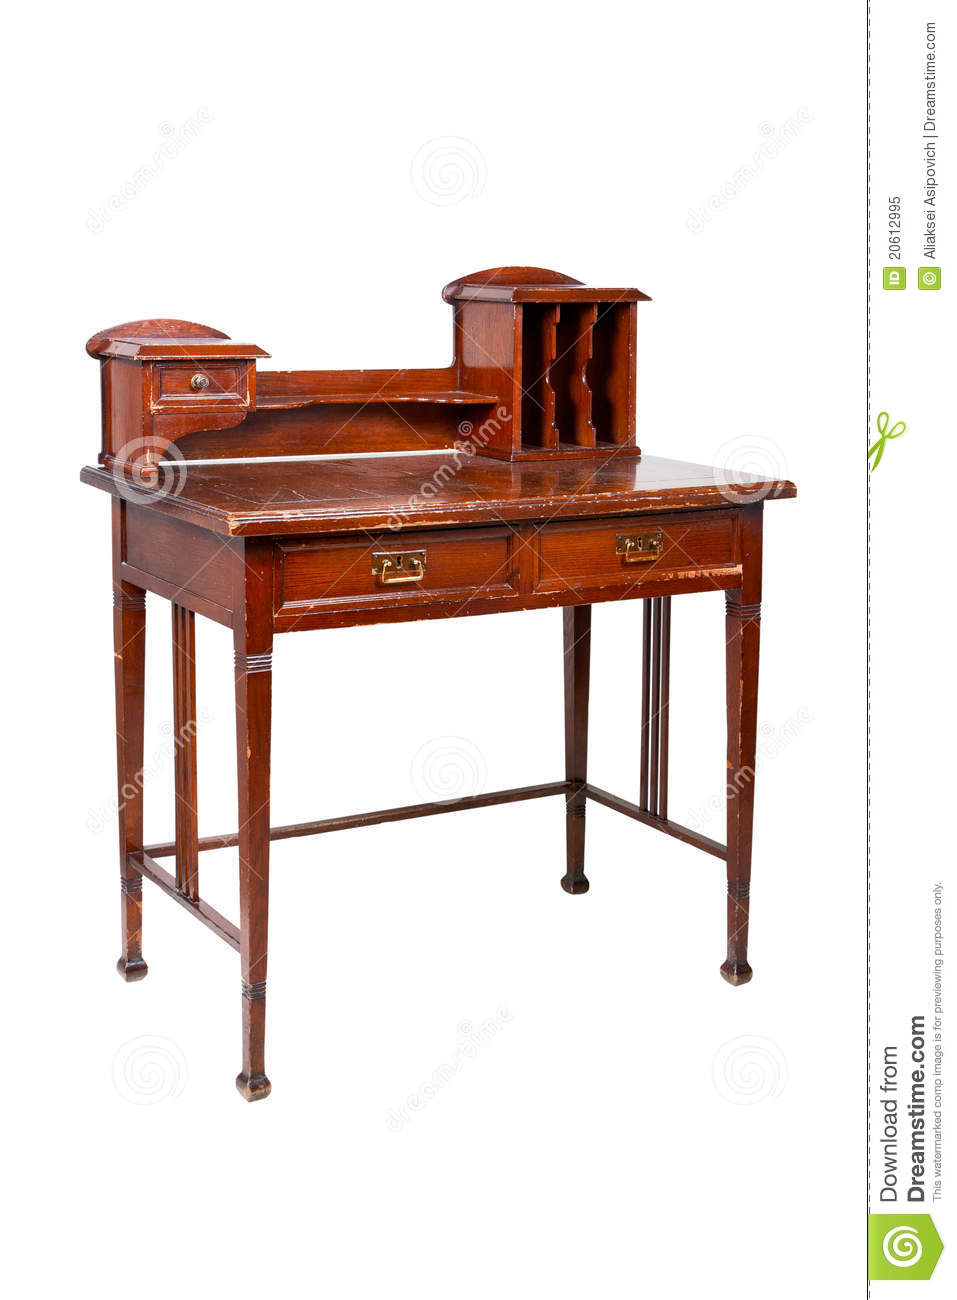 Download Antique Writing Desk, Table, Isolated Stock Image - Image of  writing, desk - Antique Writing Desk, Table, Isolated Stock Image - Image Of Writing